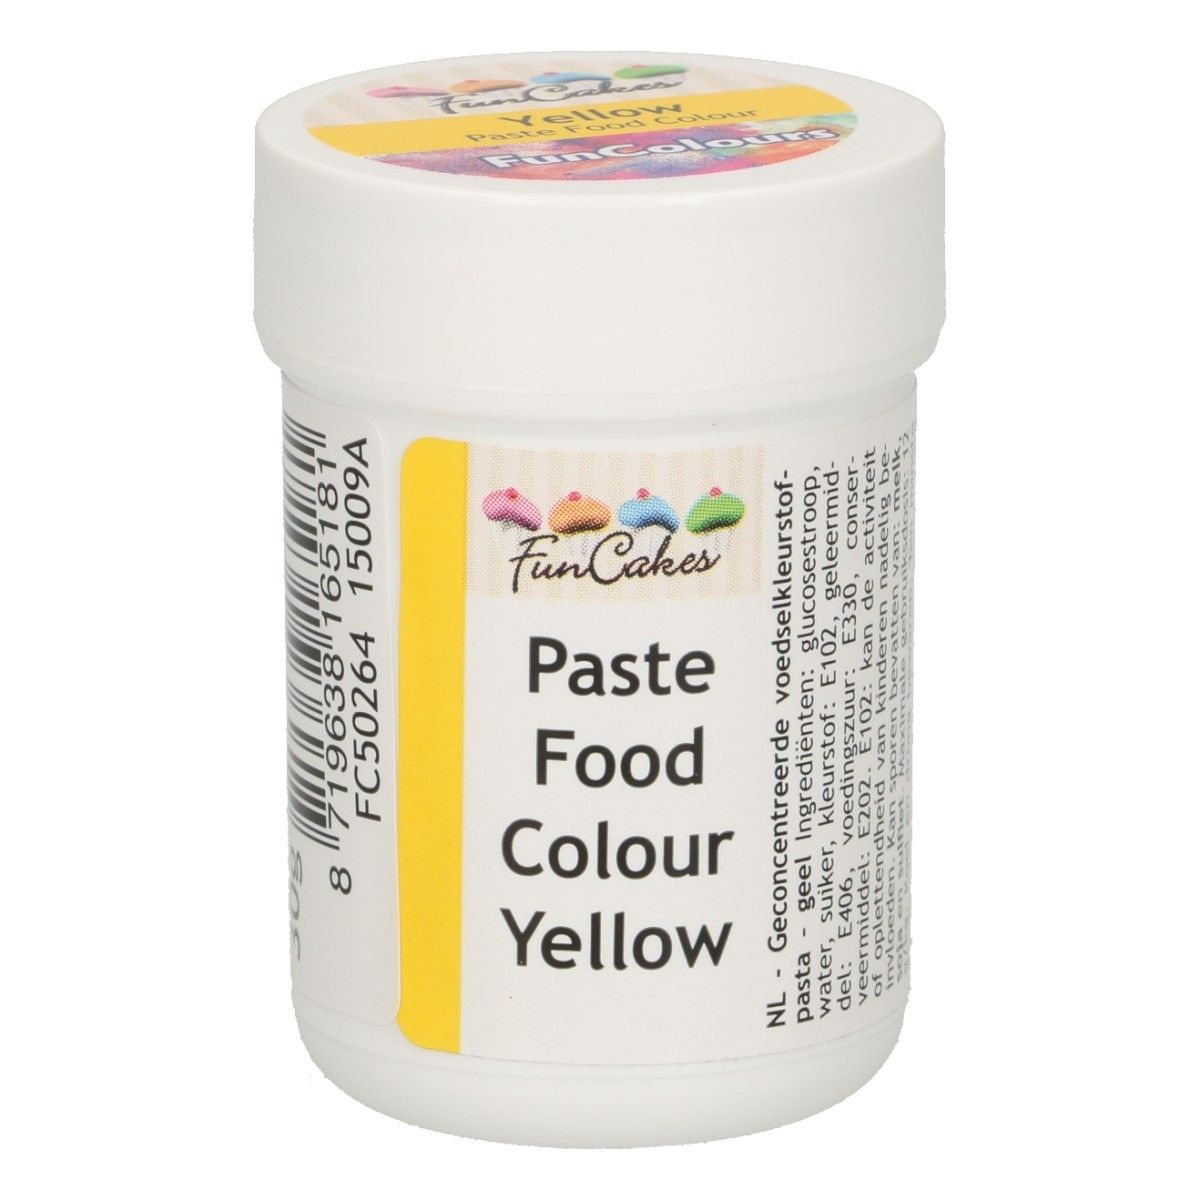 /f/u/funcakes-funcolours-paste-food-colour-yellow.jpg